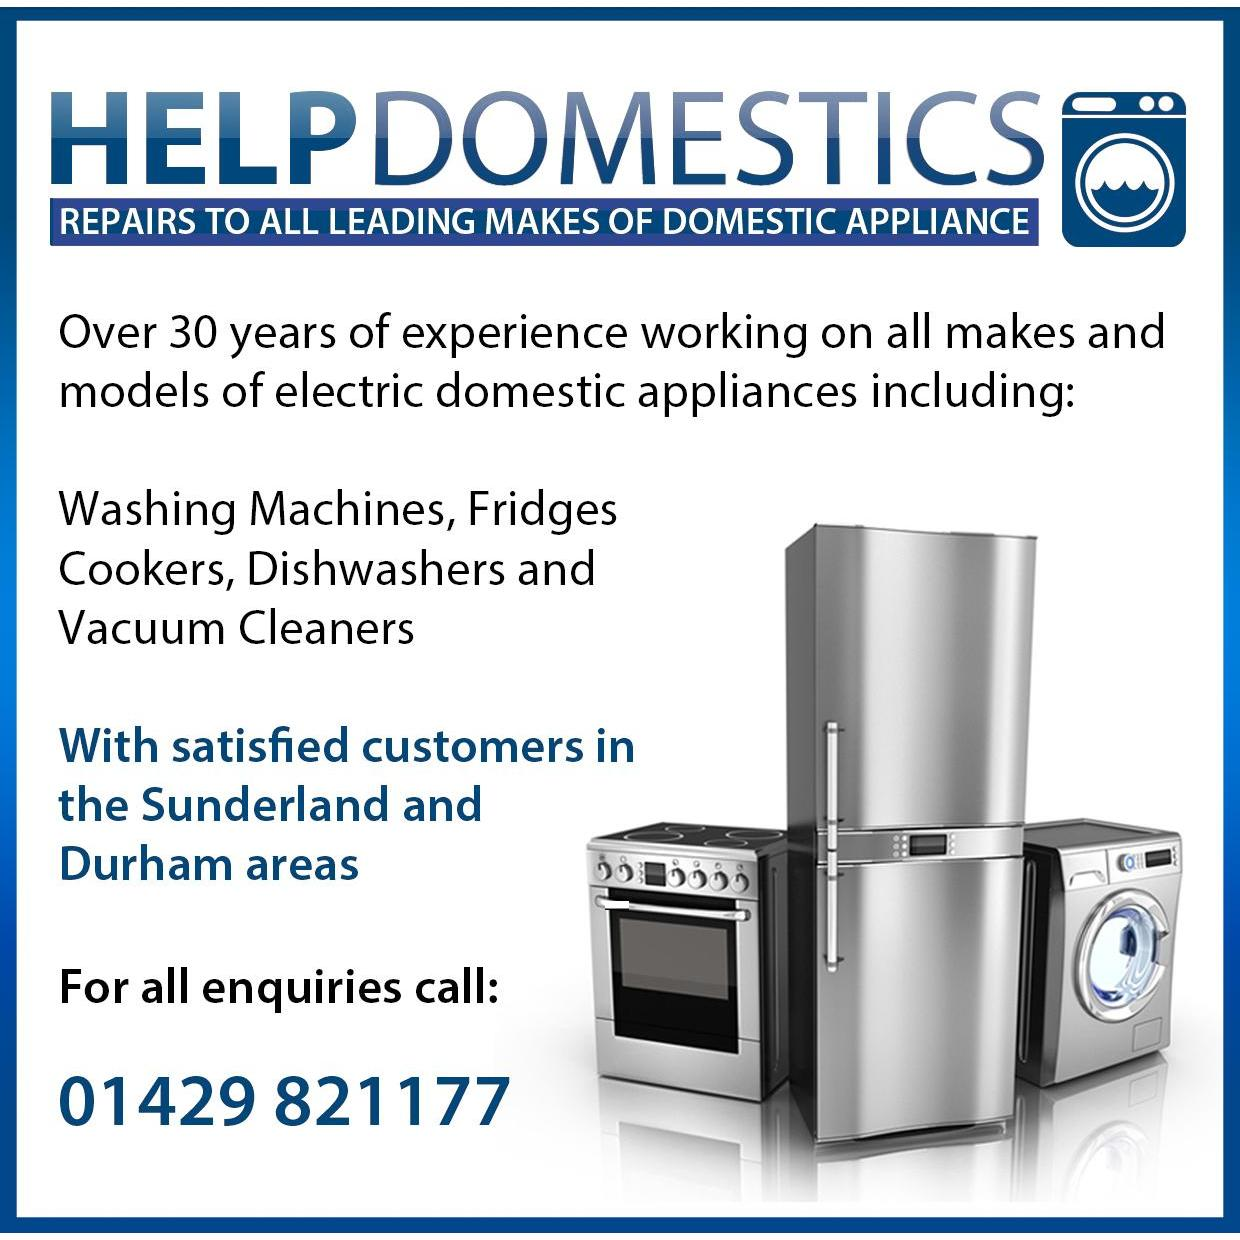 image of Help Domestics